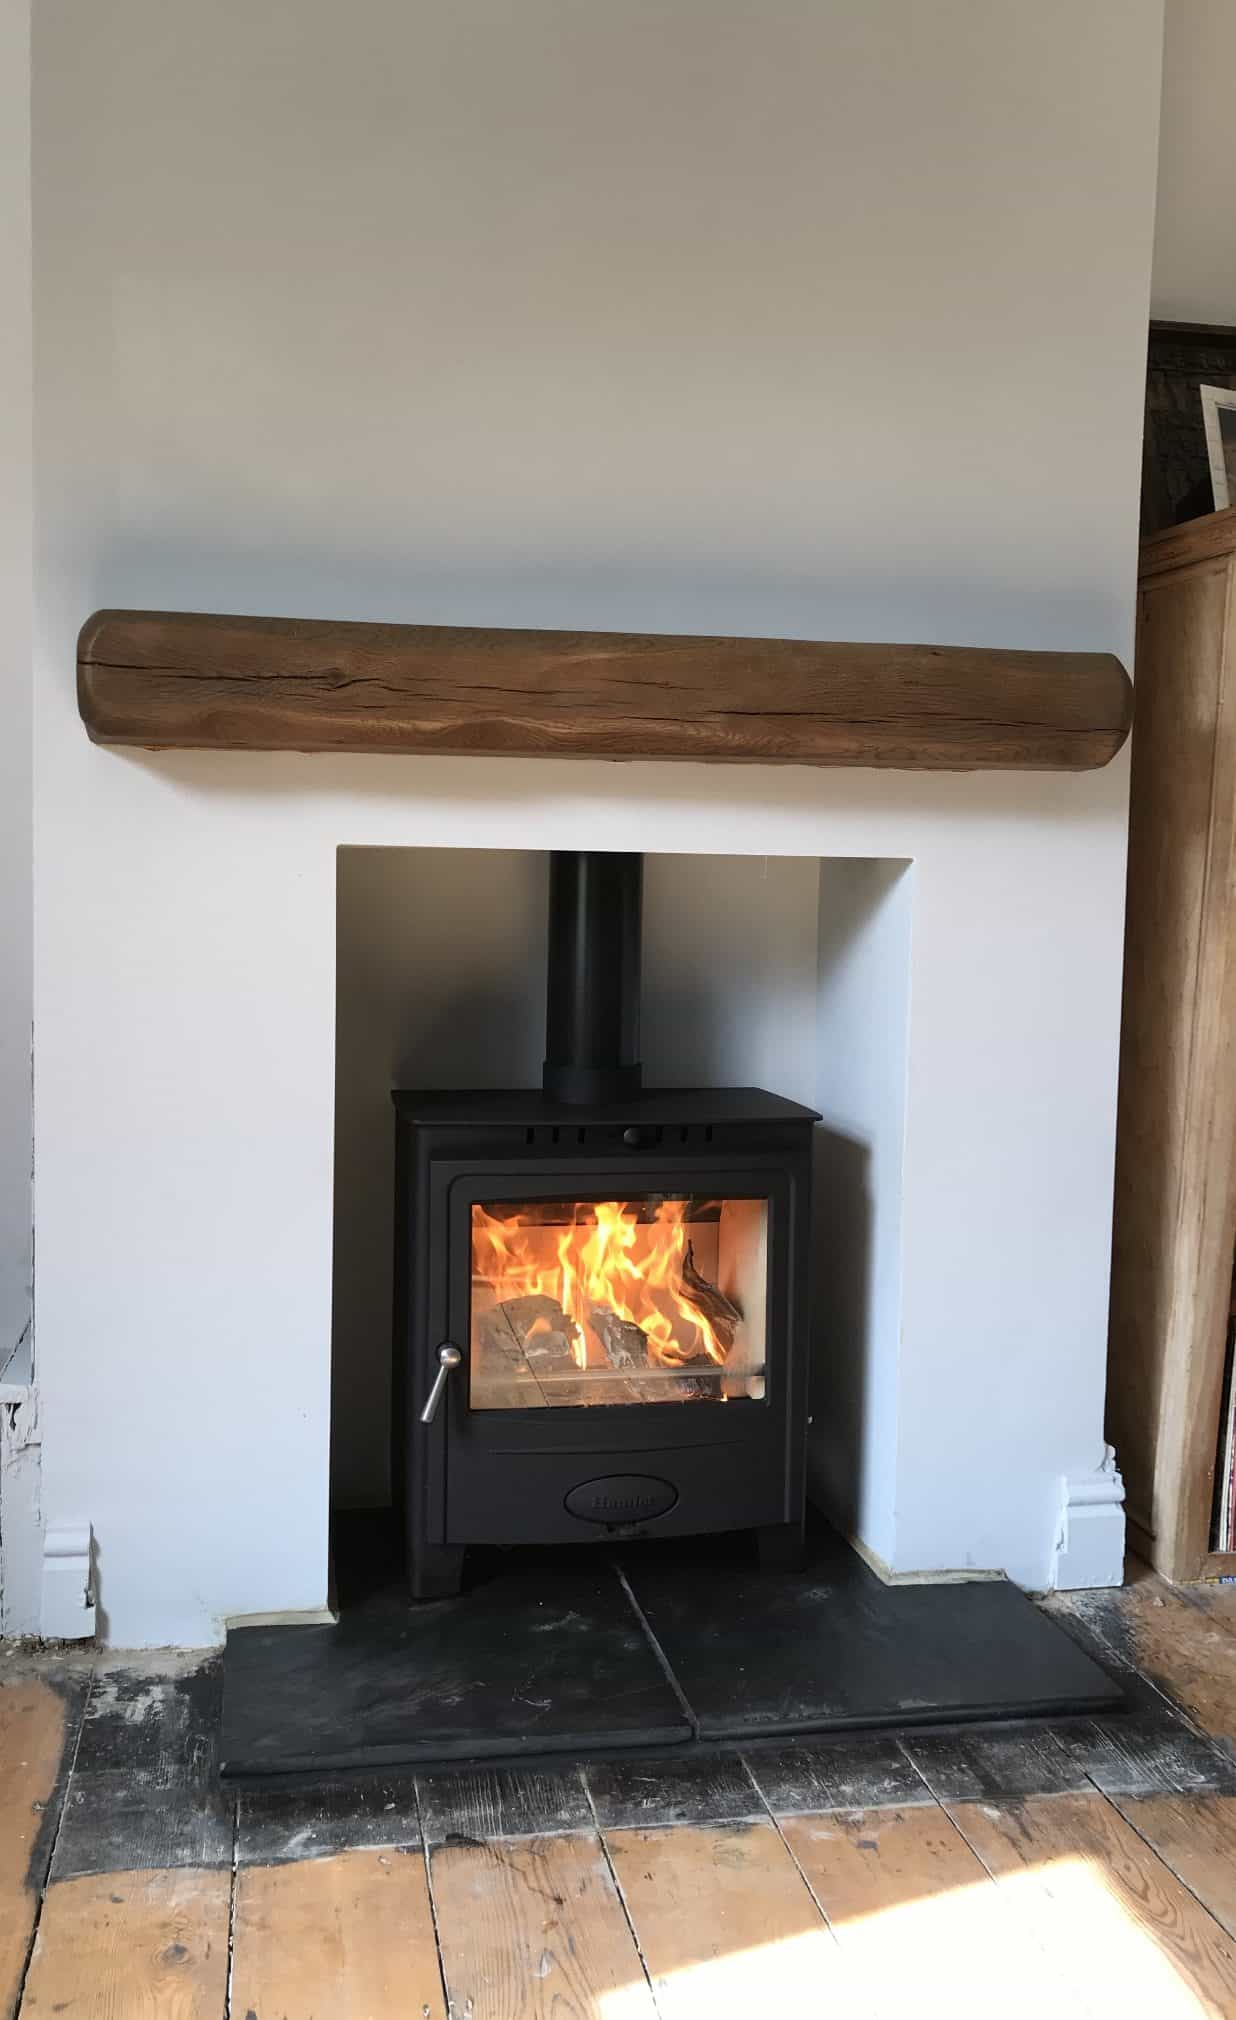 Hamlet solution 5 widescreen multi fuel stove which is a clean burning appliance and chimney liner installed in faversham kent